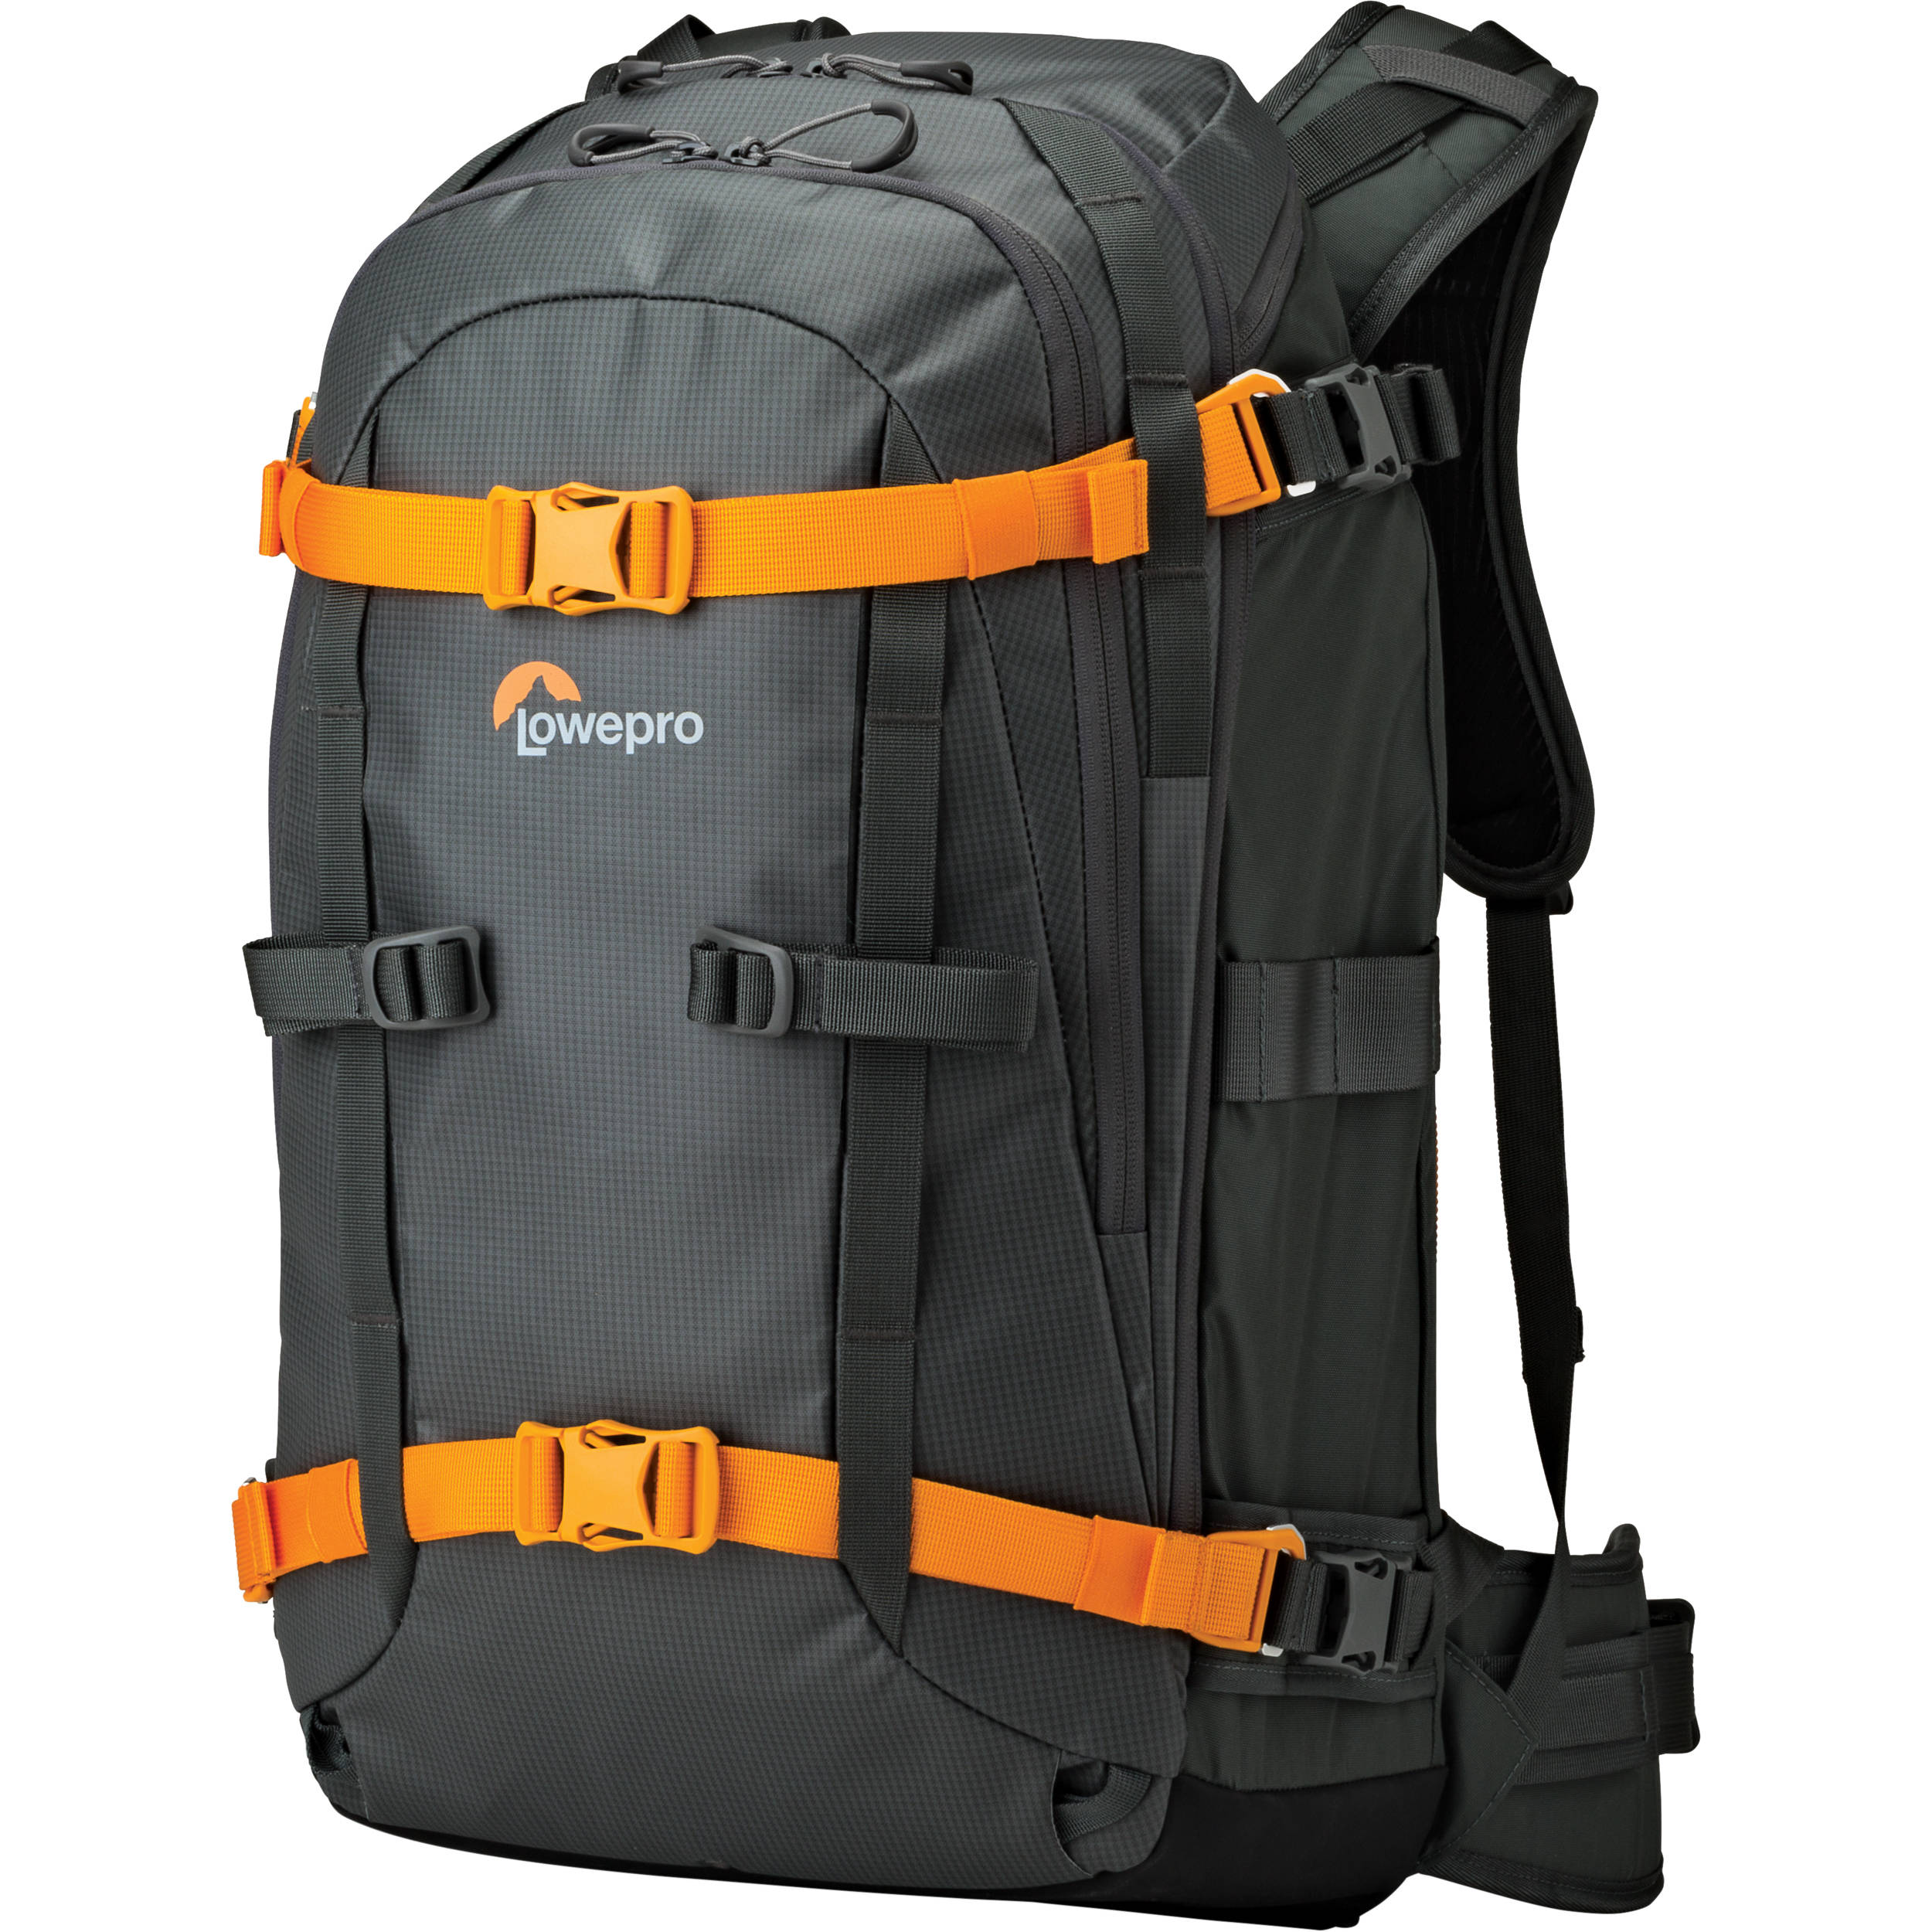 My backpack of choice is the Lowepro Whistler, because of its weatherproof material, compact form, and rear-opening compartments (so the side that faces your back isn't the side that you put down on the wet ground when you take it off). It's actually a smaller pack than I used to carry, and it encourages me to bring less equipment, which allows me to hike further and with less fatigue.